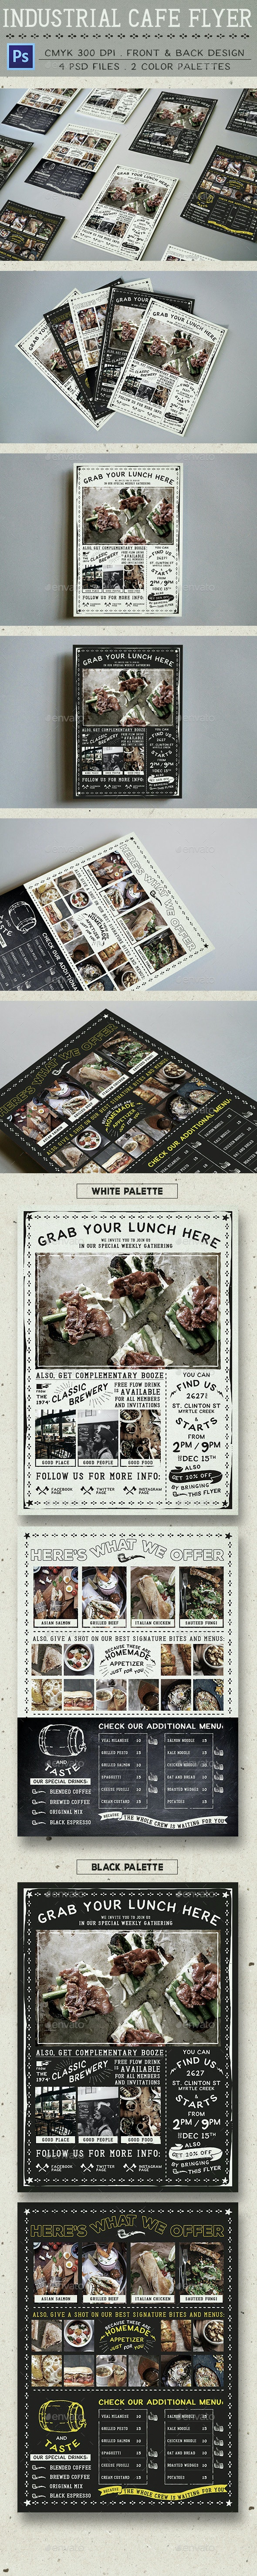 Industrial Cafe Flyer - Food Menus Print Templates